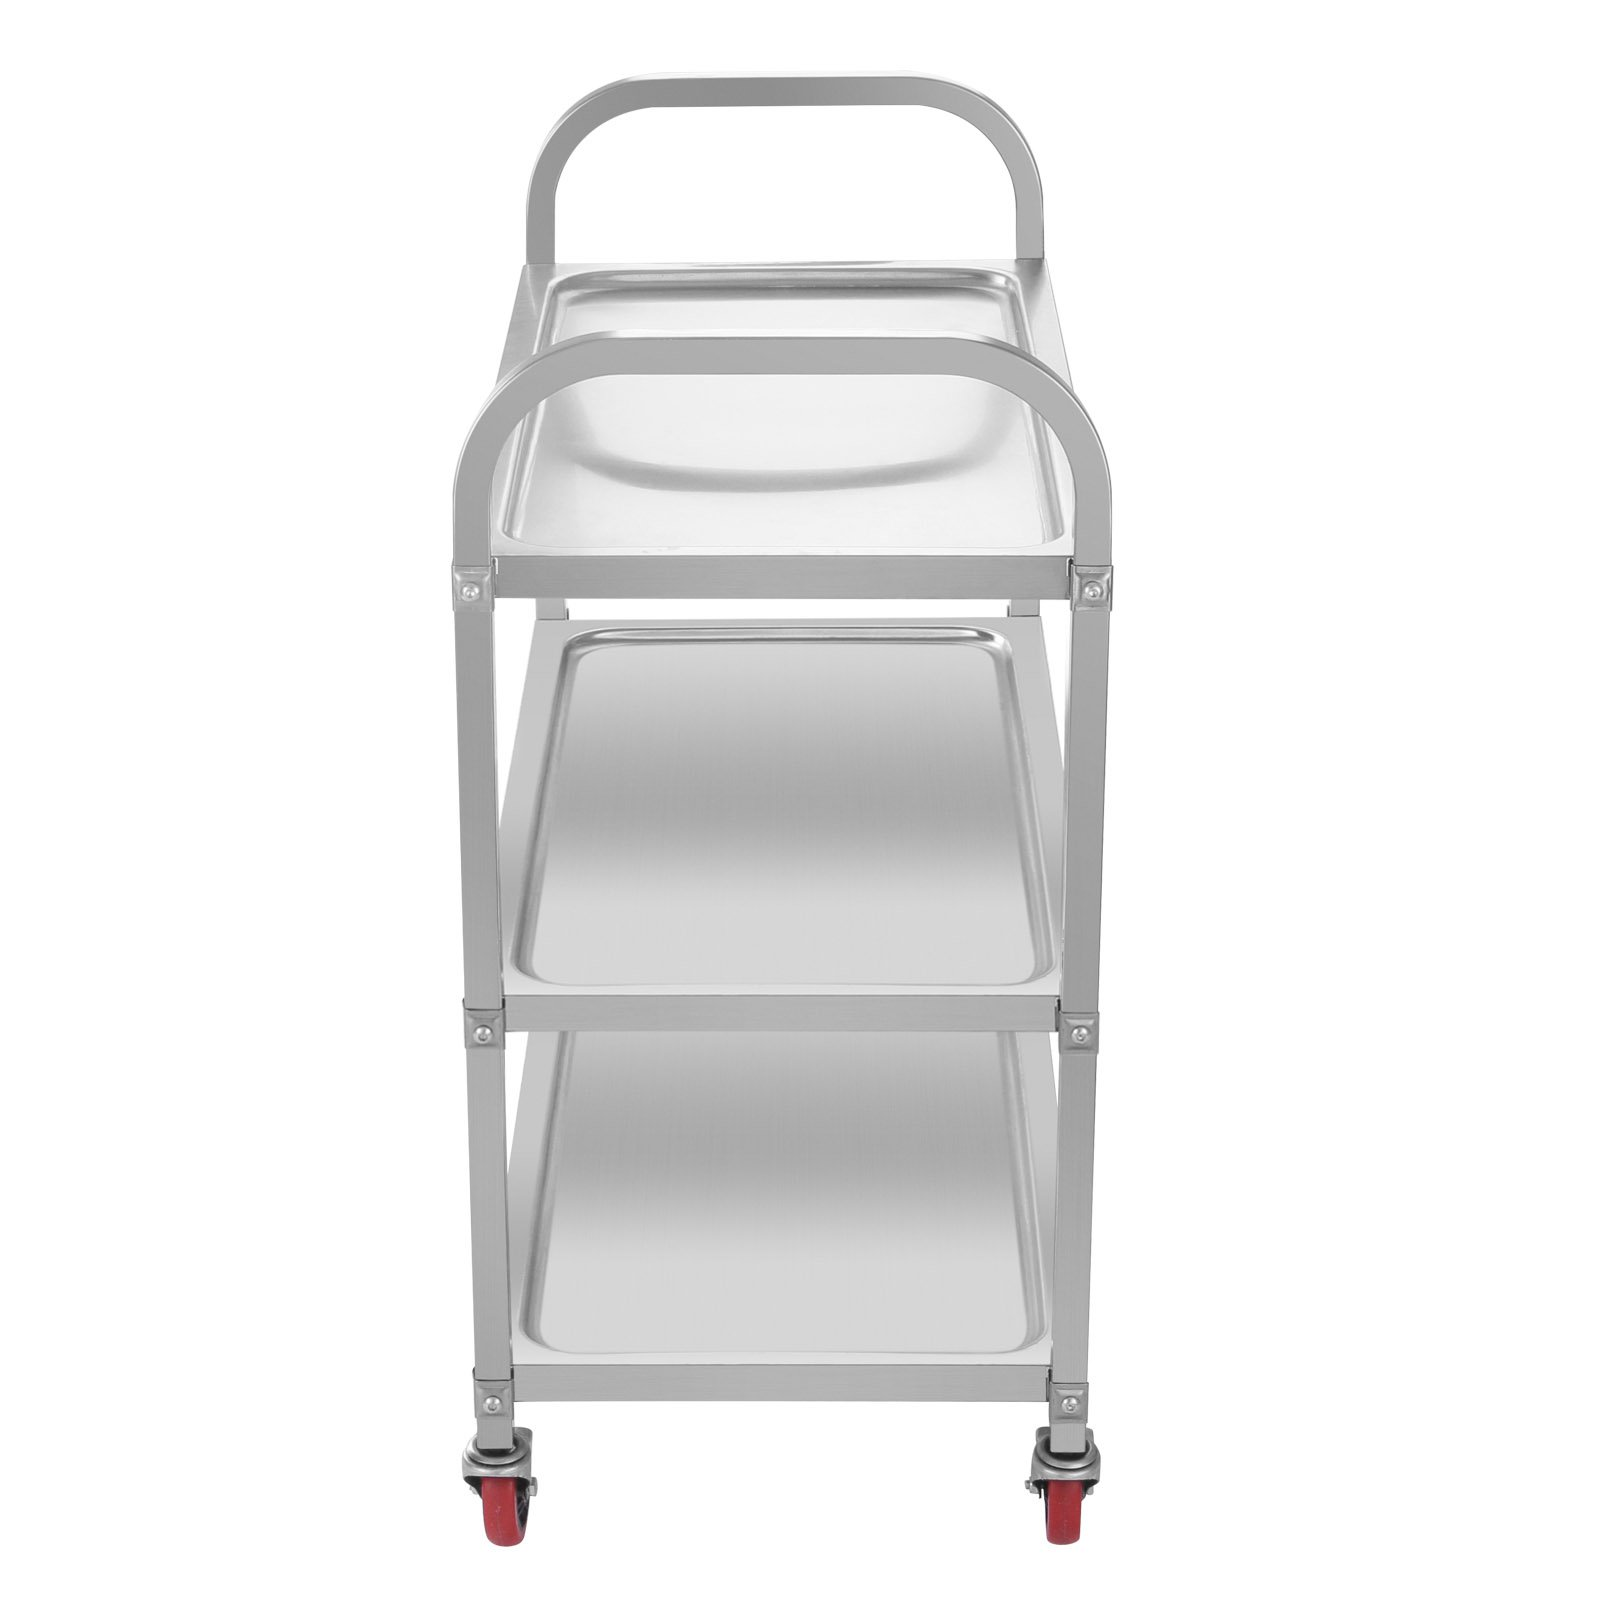 Superland 3 Shelf Utility Cart 264Lbs Stainless Steel Cart with Wheels Commercial Bus Cart for Kitchen Commercial Hotel Restaurant Dining Area Utility Serving (3 Shelf) by Superland OrangeA (Image #4)